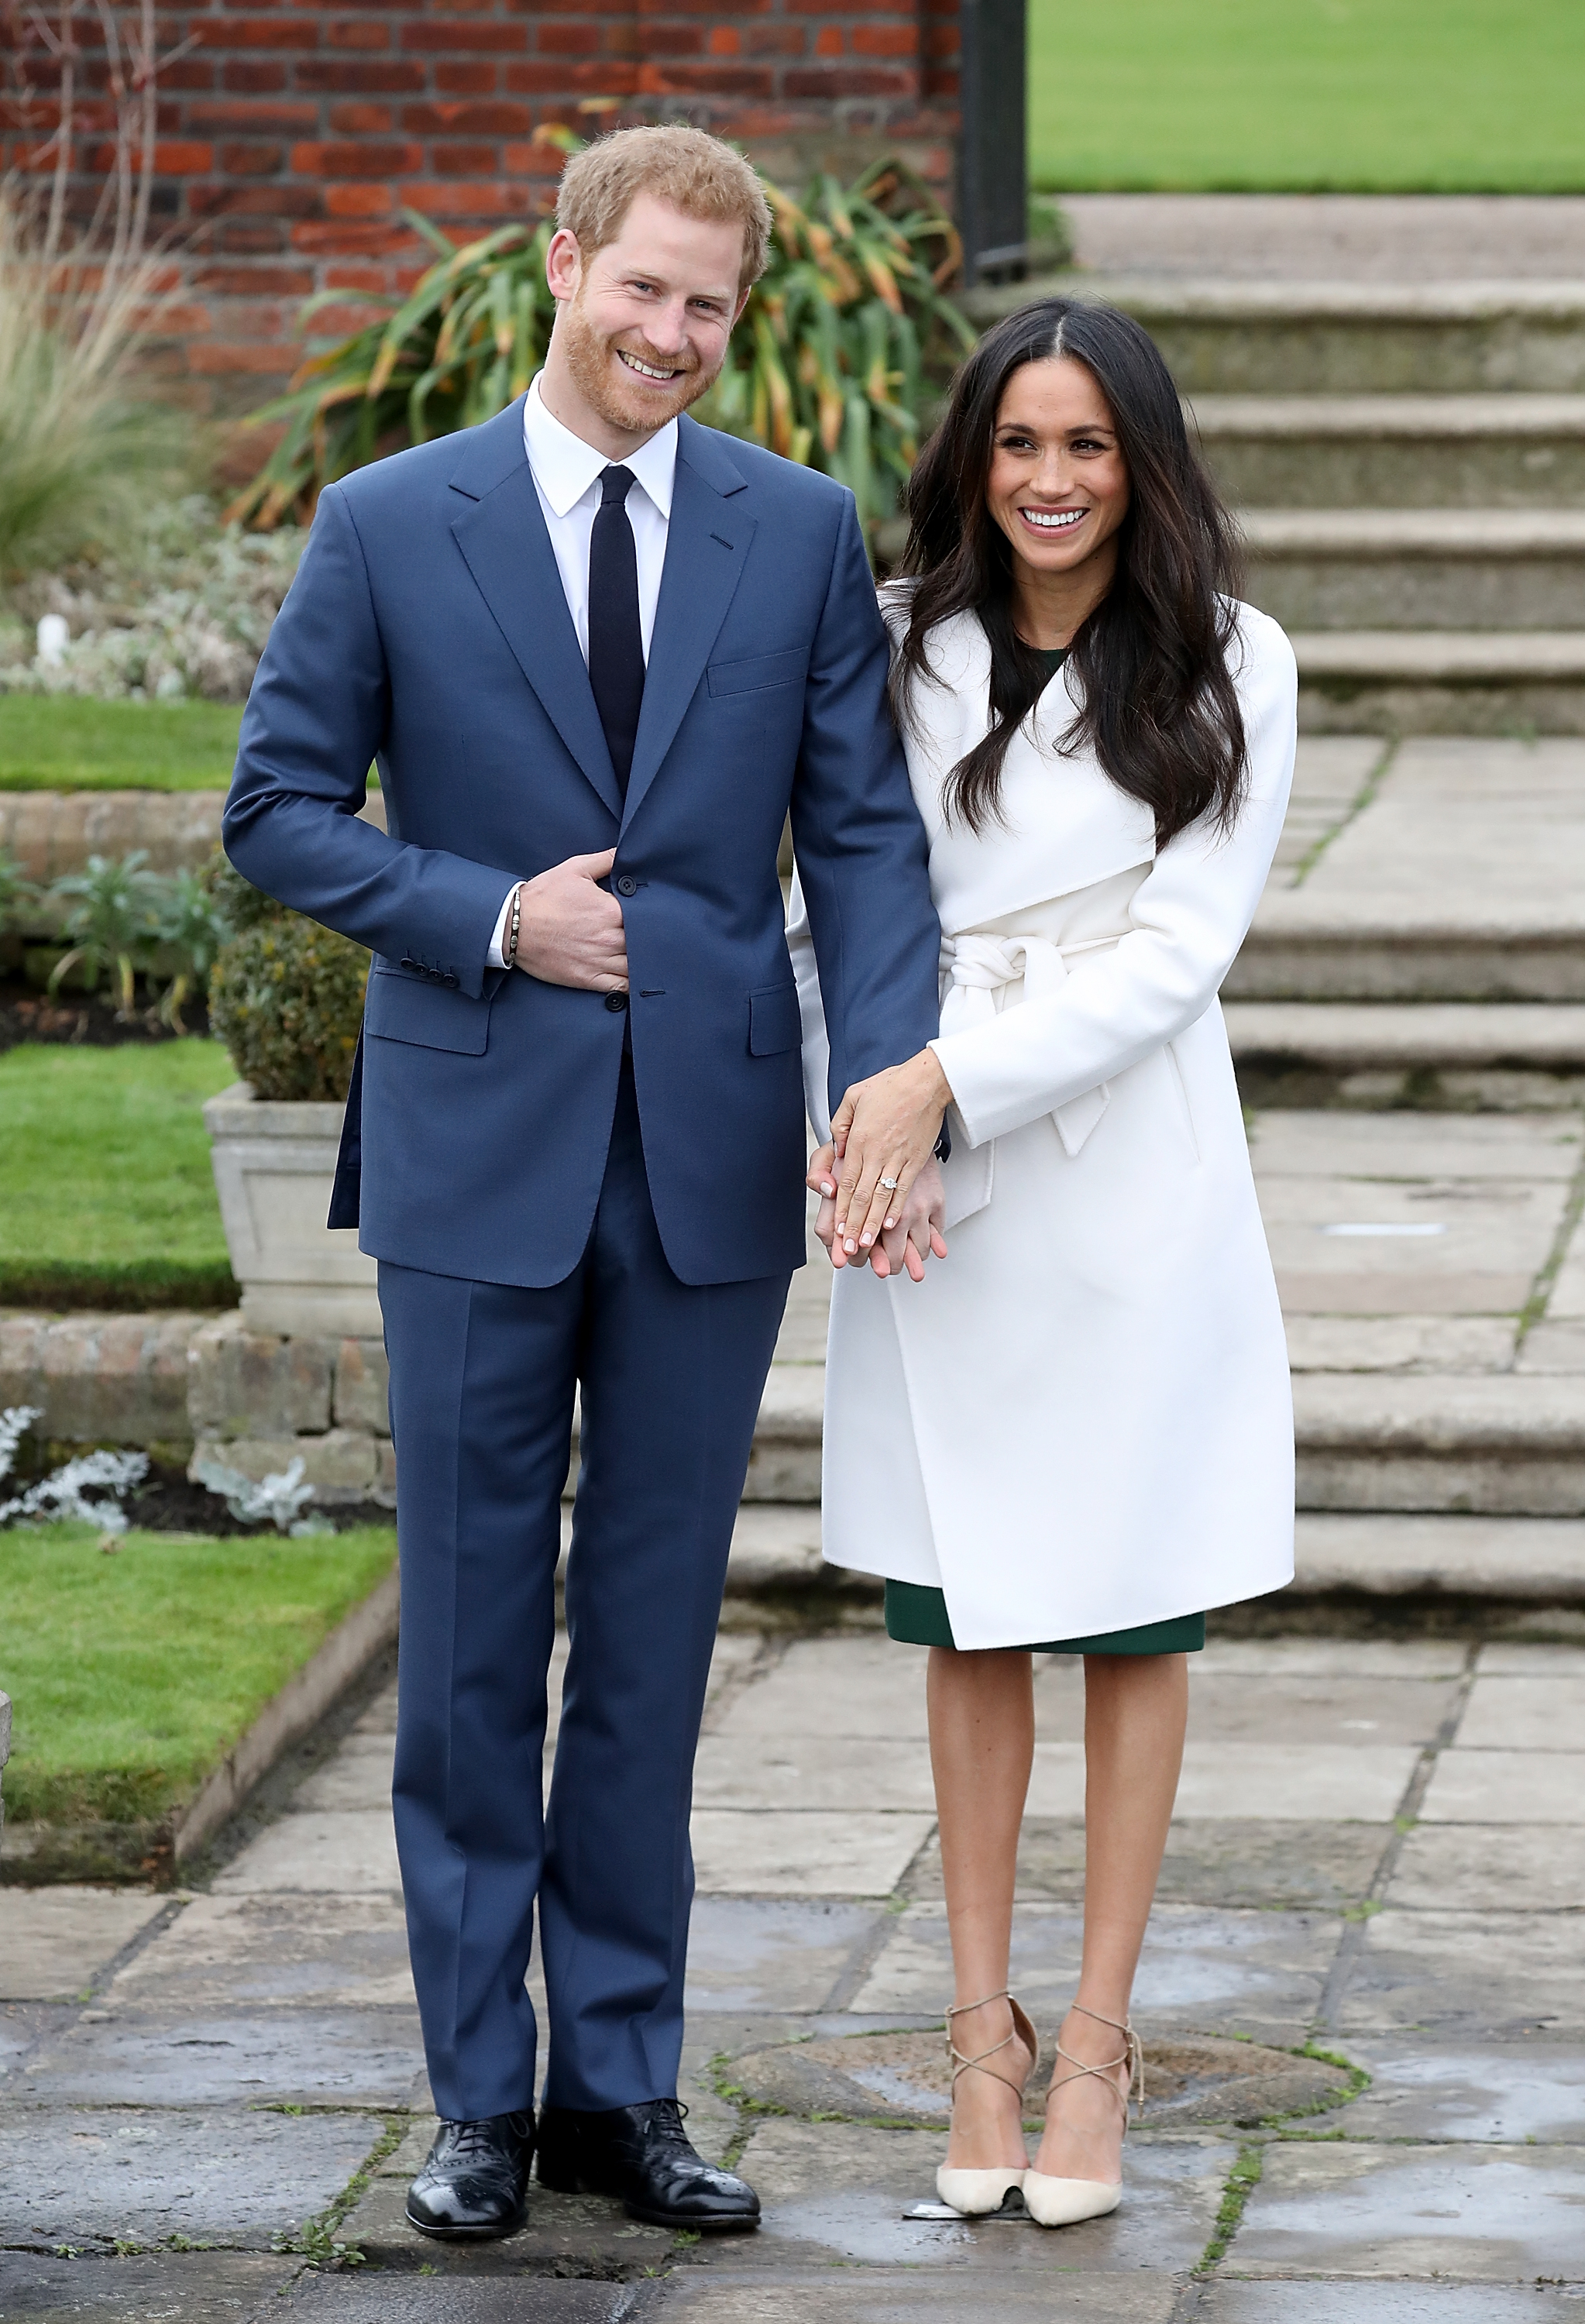 Thomas says Meghan was upset that he said she and Harry wanted to have a baby soon (Photo by Chris Jackson/Chris Jackson/Getty Images)